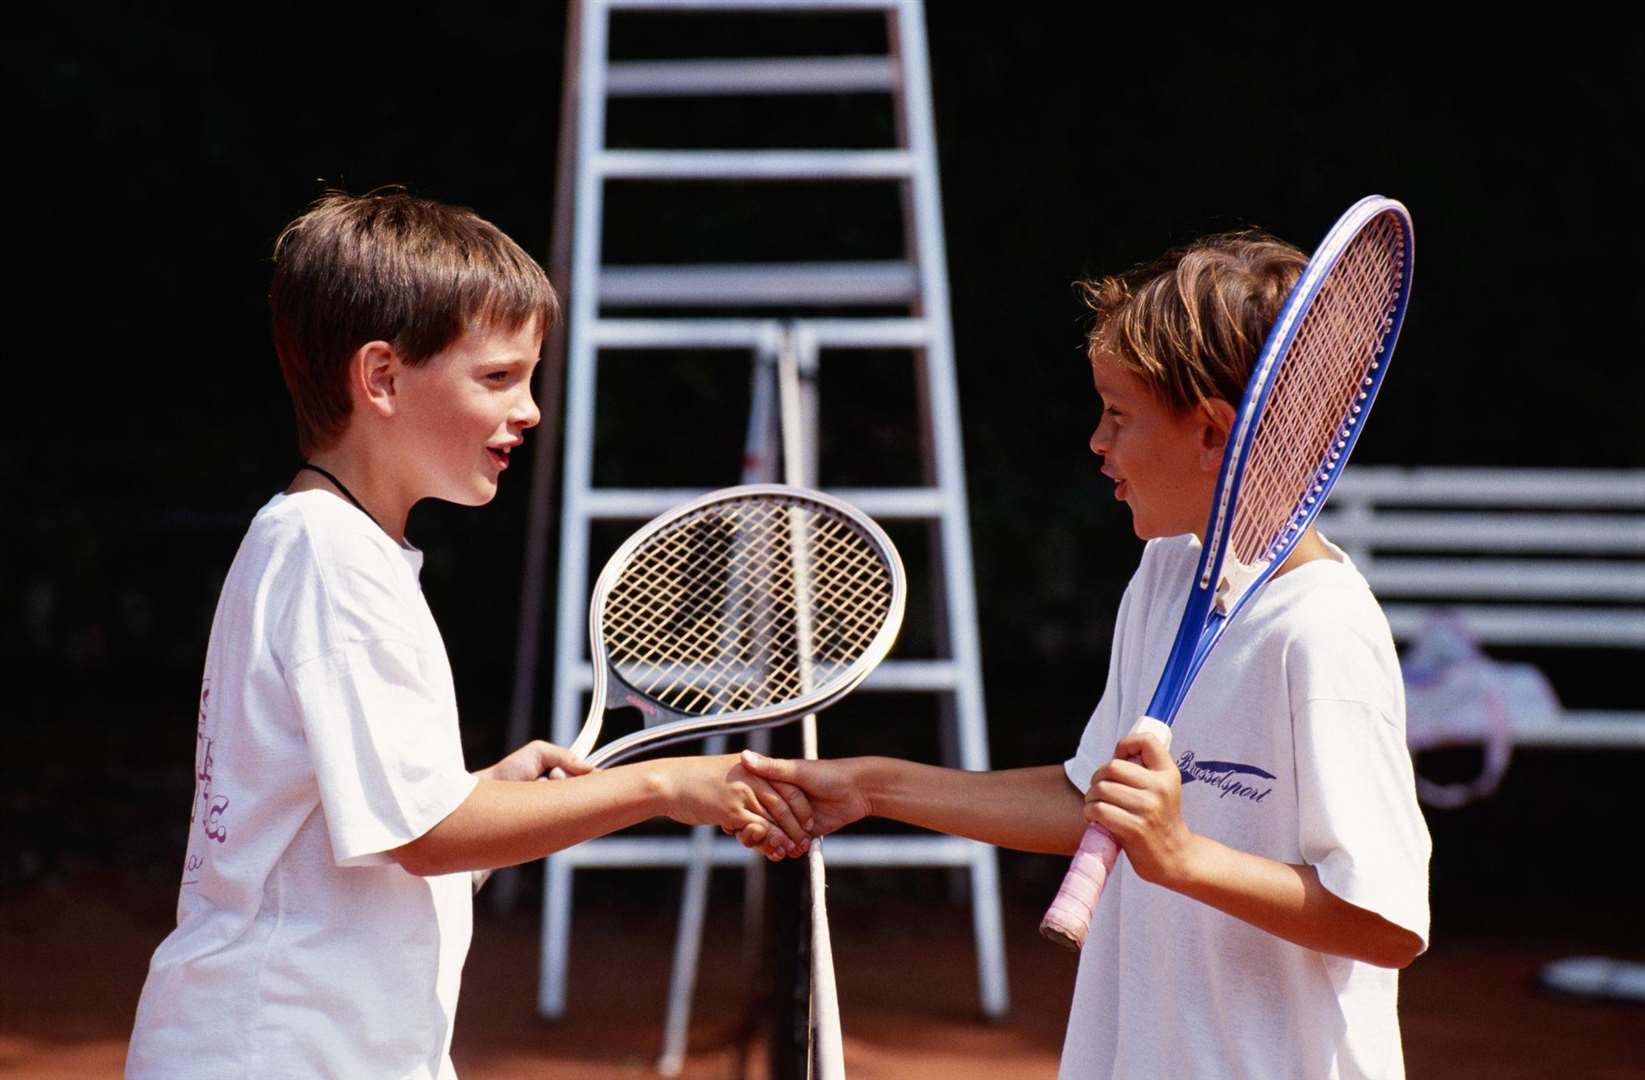 Encourage your child to take up a new sport or hobby to perhaps meet new friends